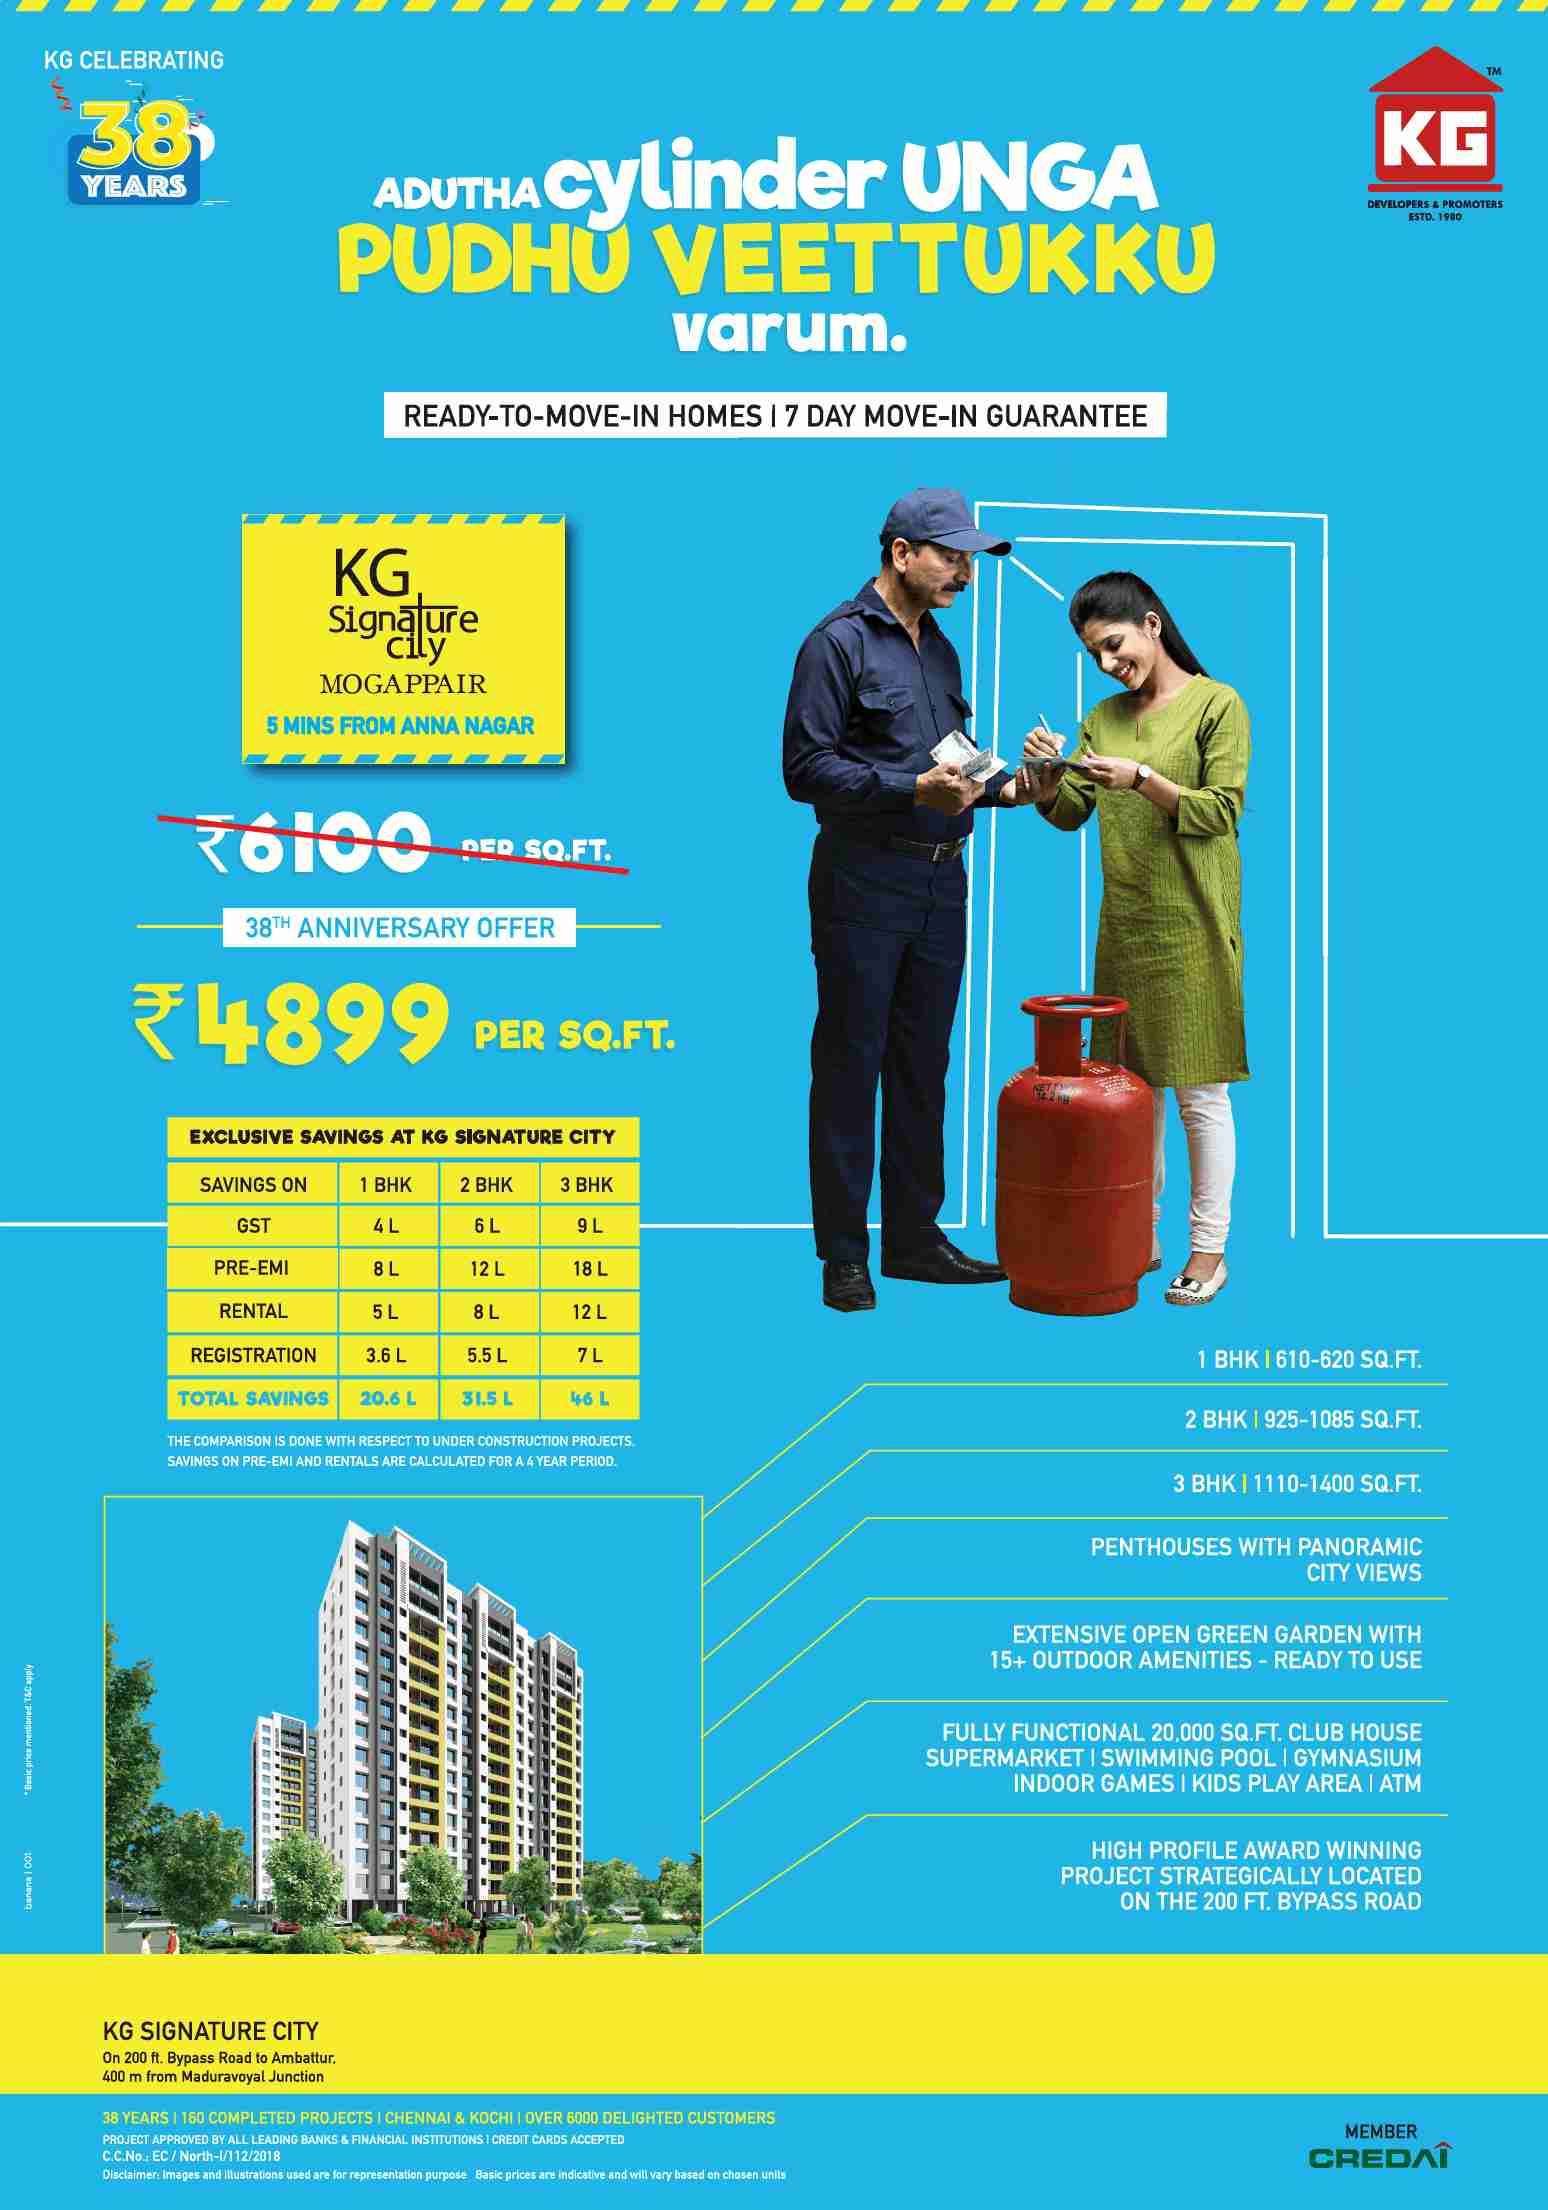 Book ready to move homes at Rs 4899 per sqft at KG Signature City in Chennai